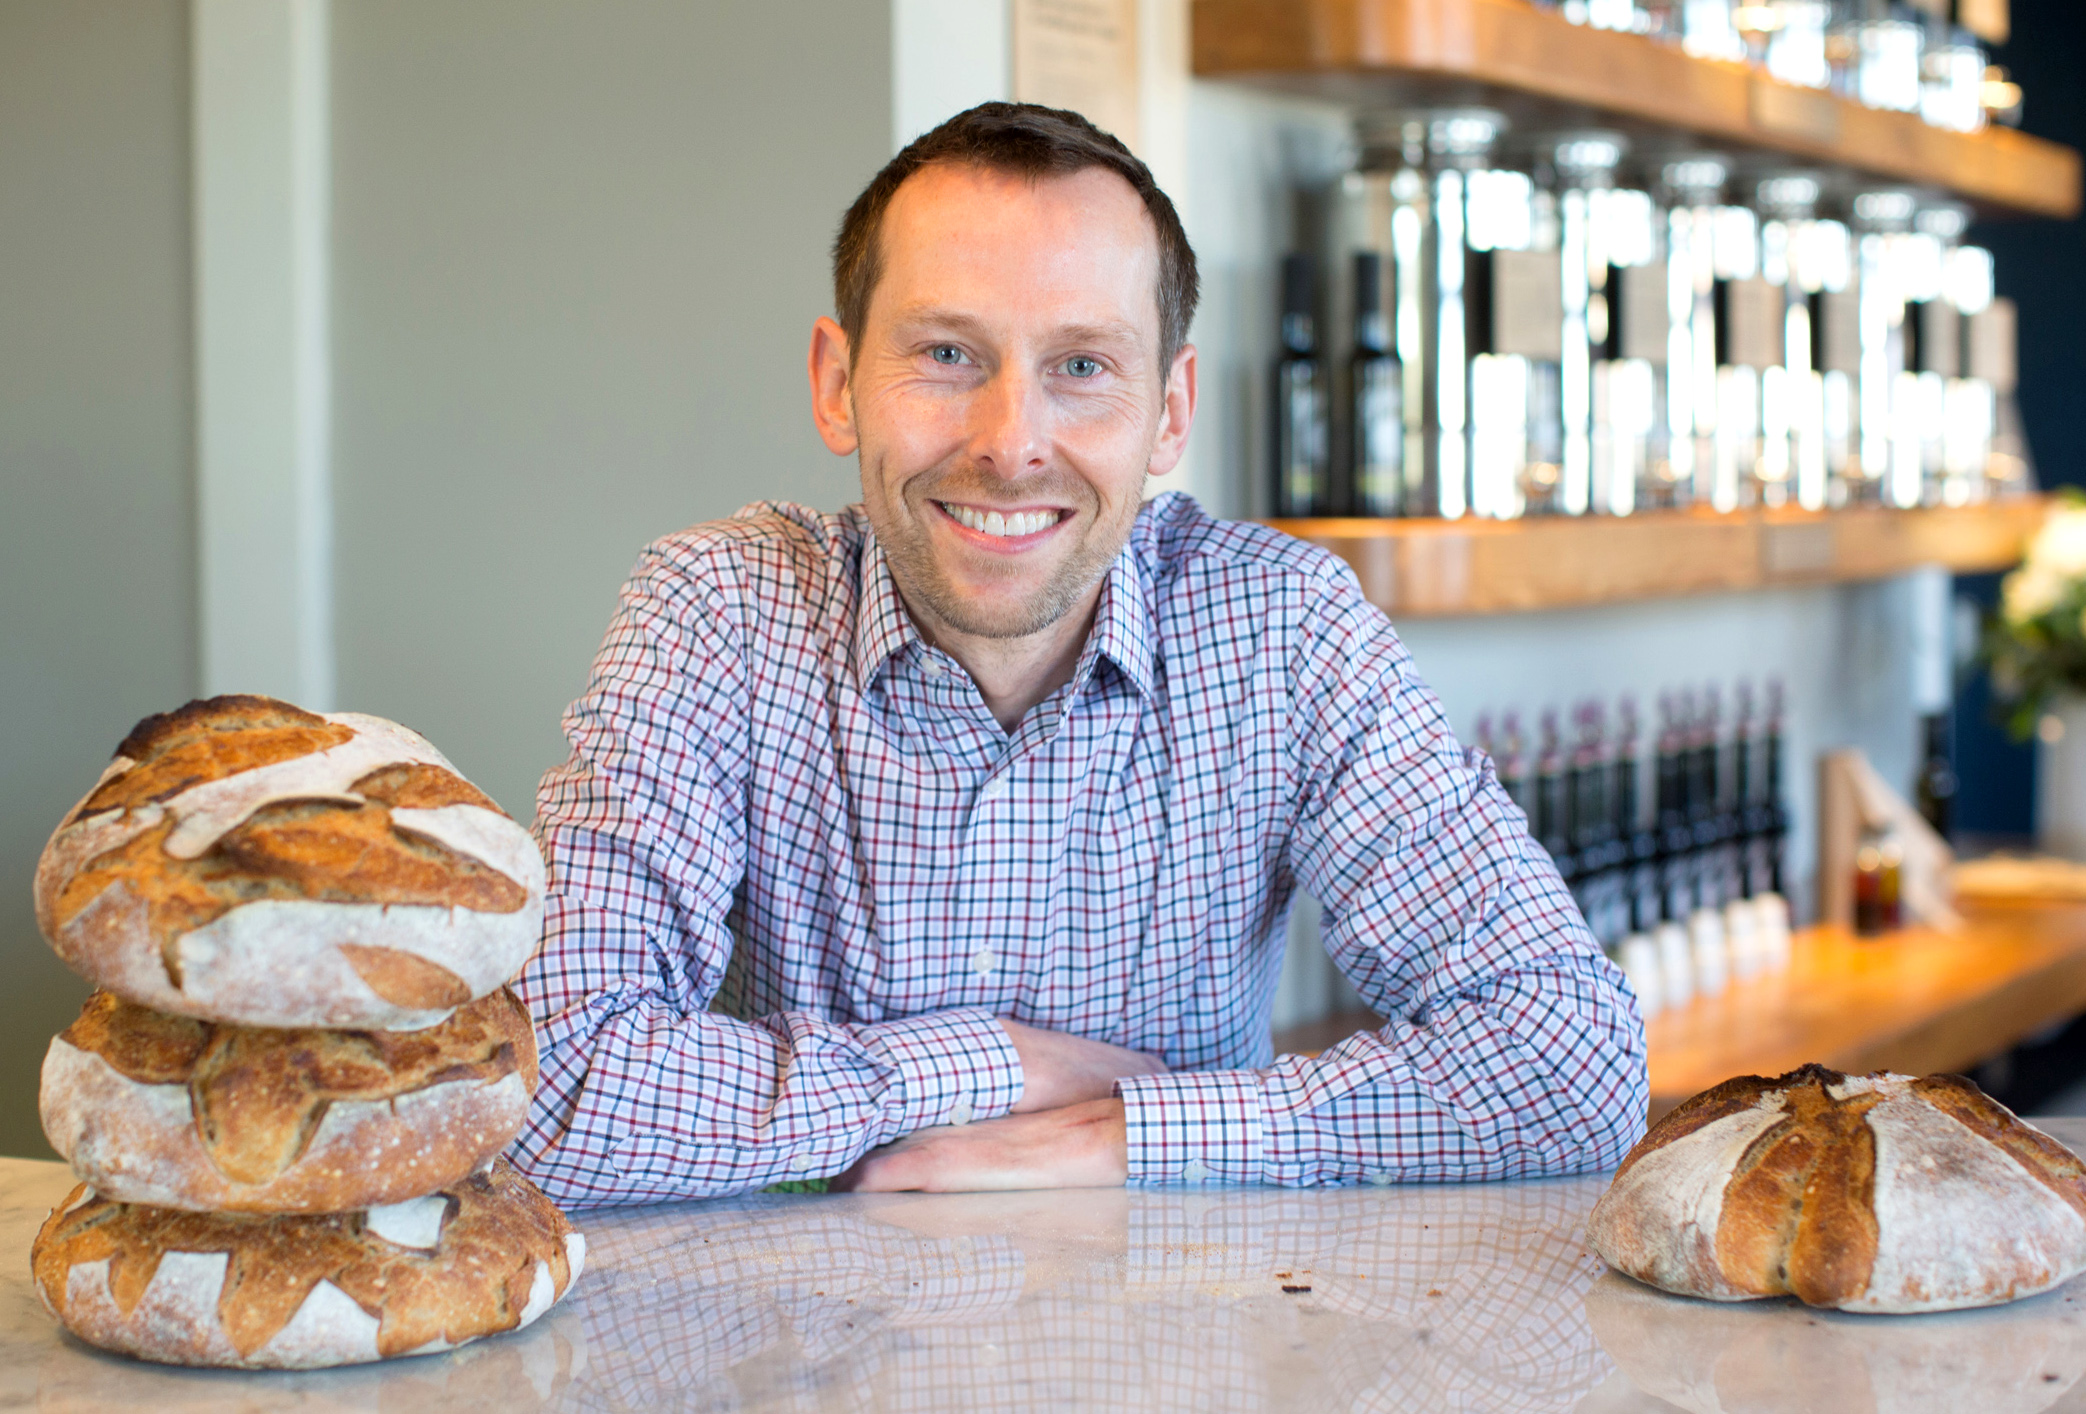 Glorious Artisan Bakery's Leo Walters.. Sign up for the newsletter and get notified about our grand opening!